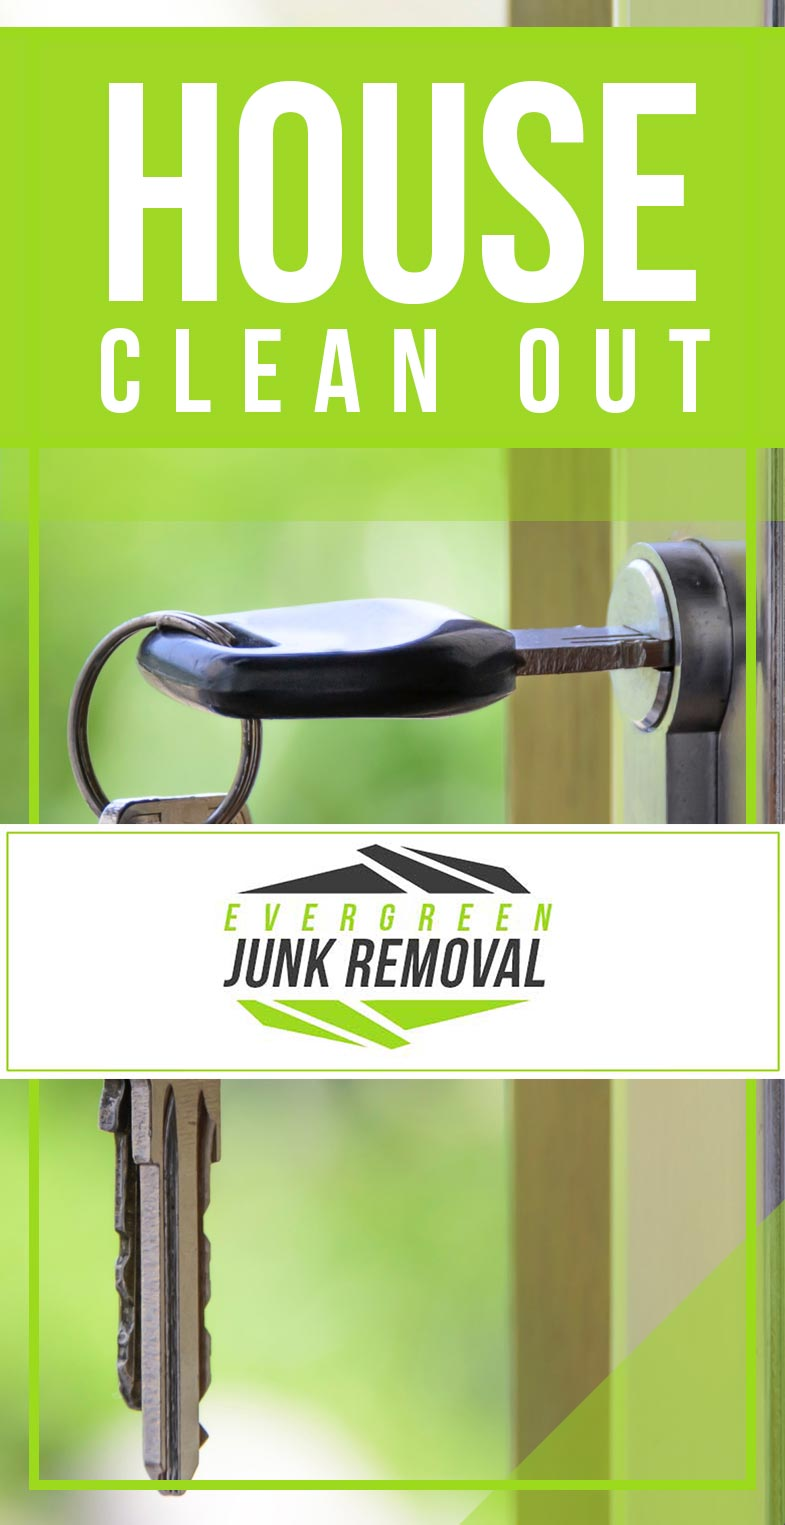 Junk Removal Briny Breezes House Clean Out